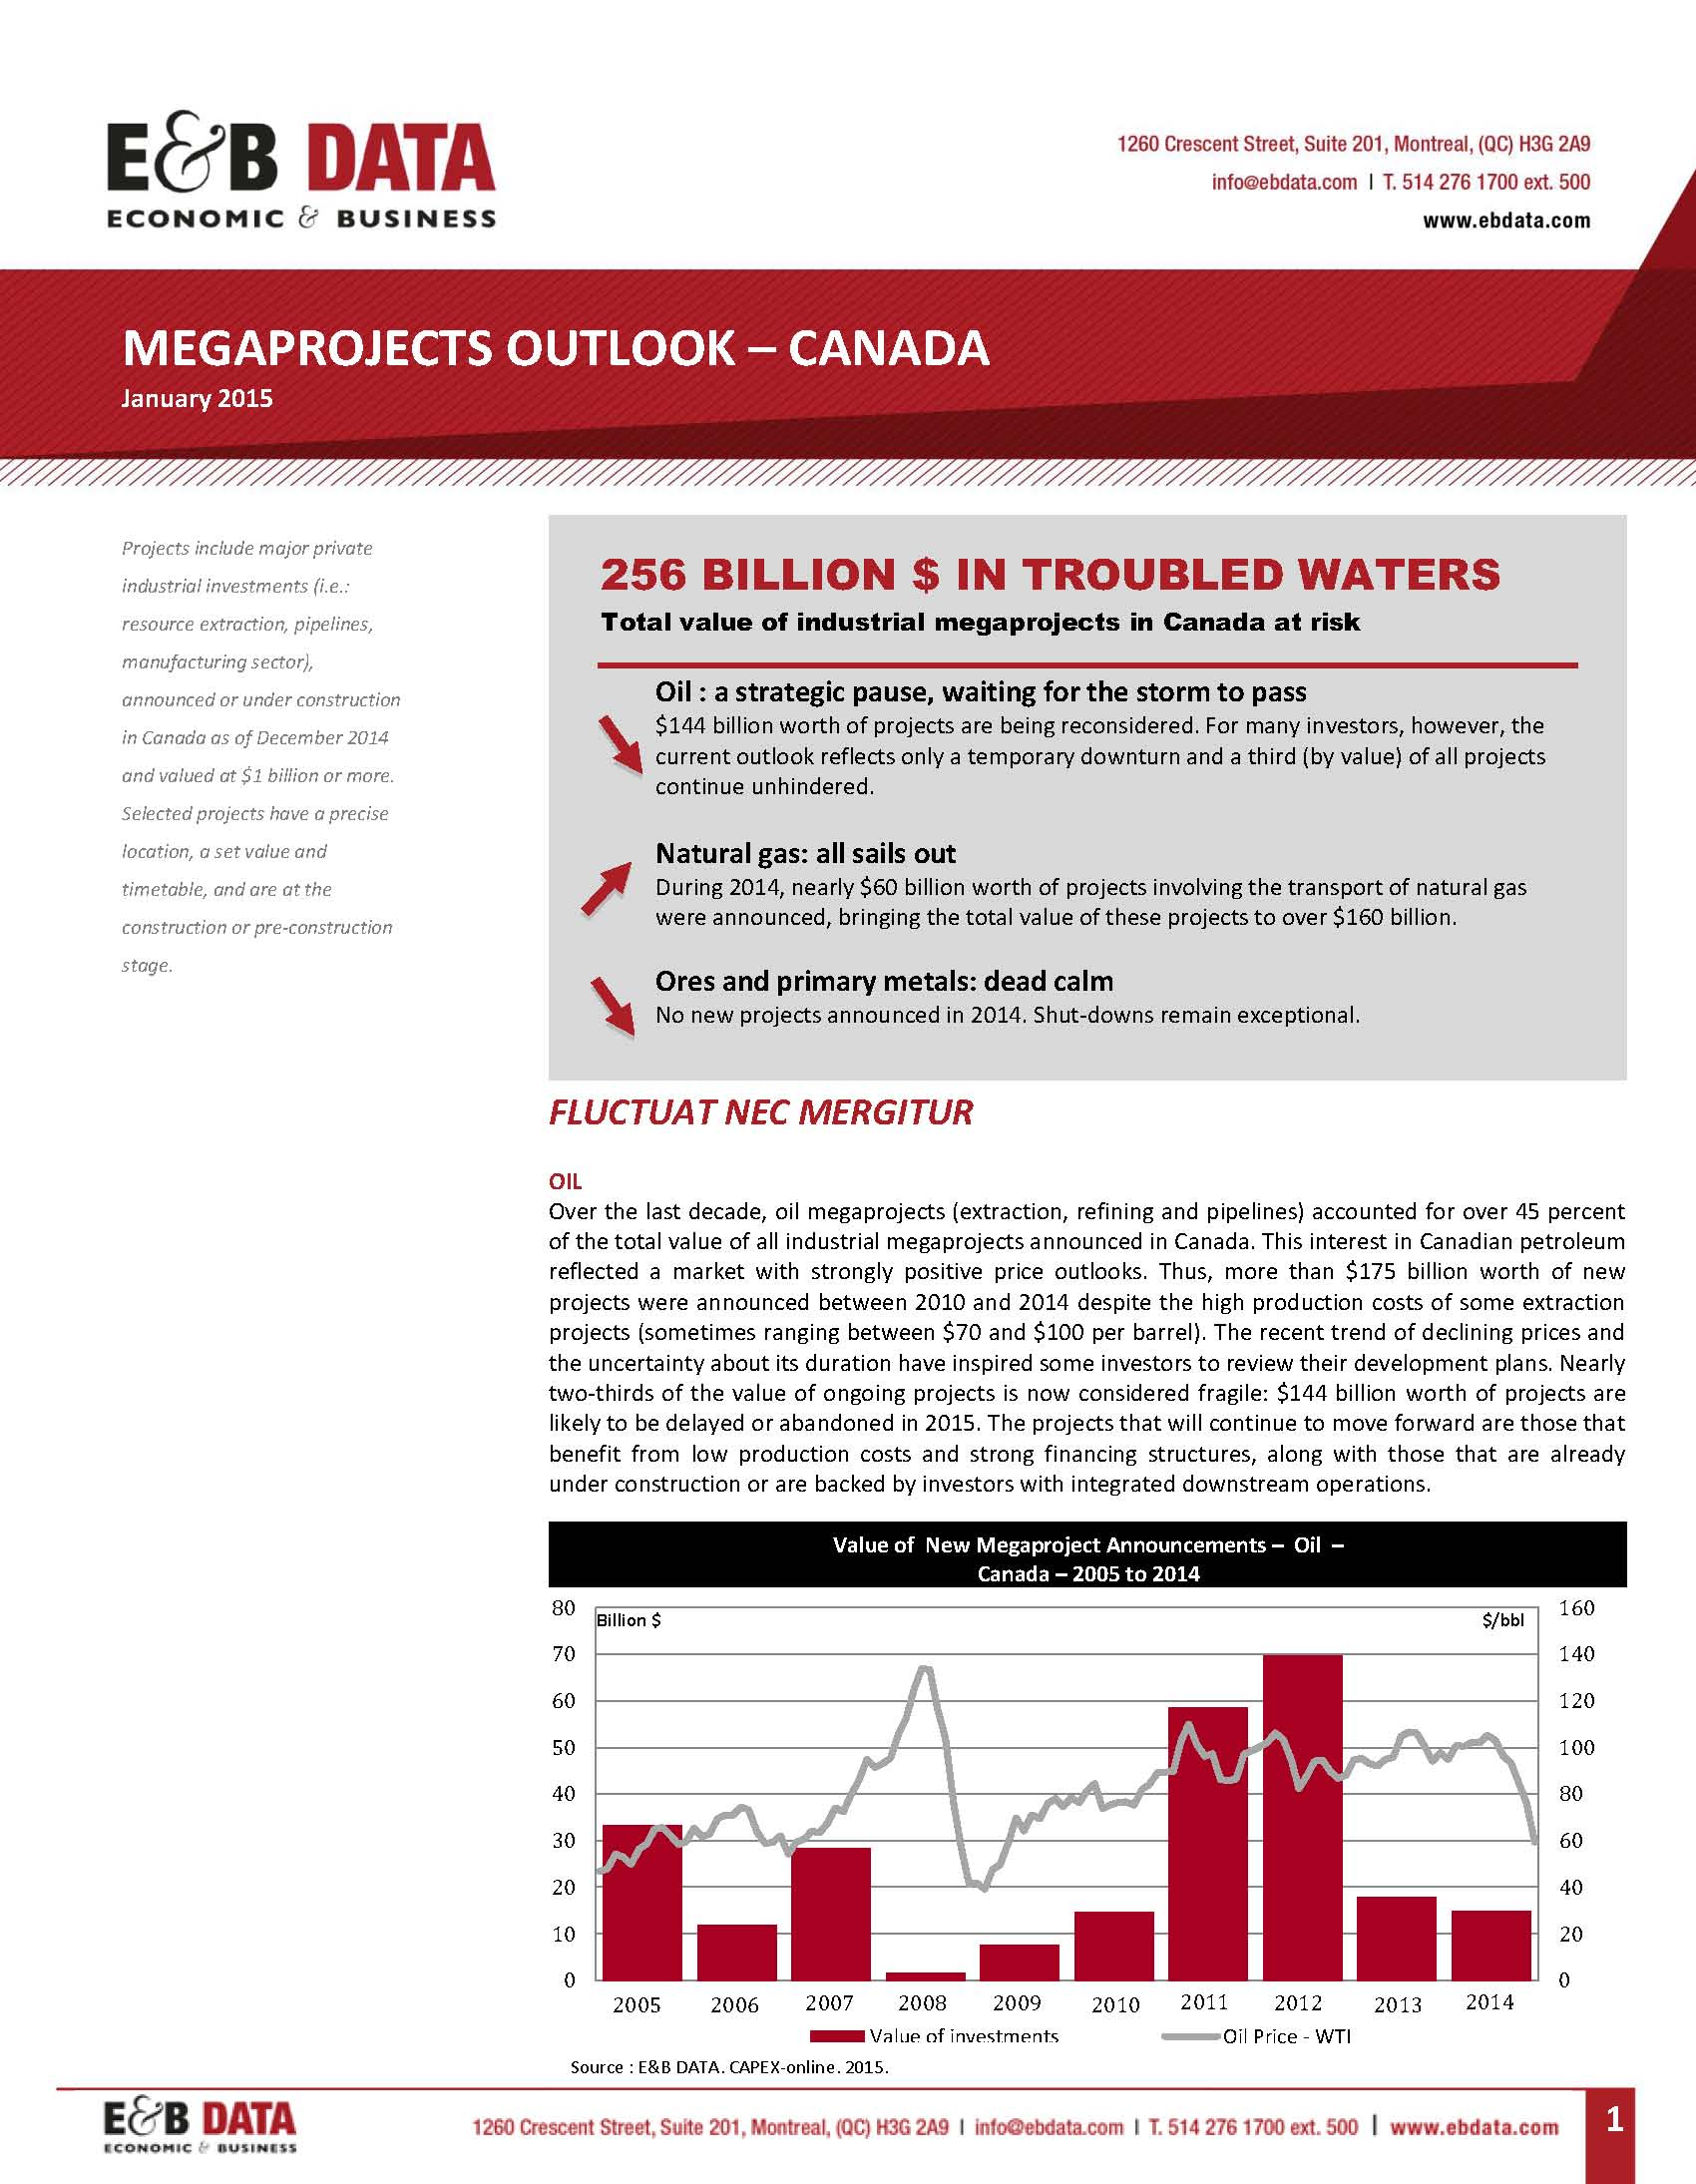 Megaprojects Outlook 4Q2014